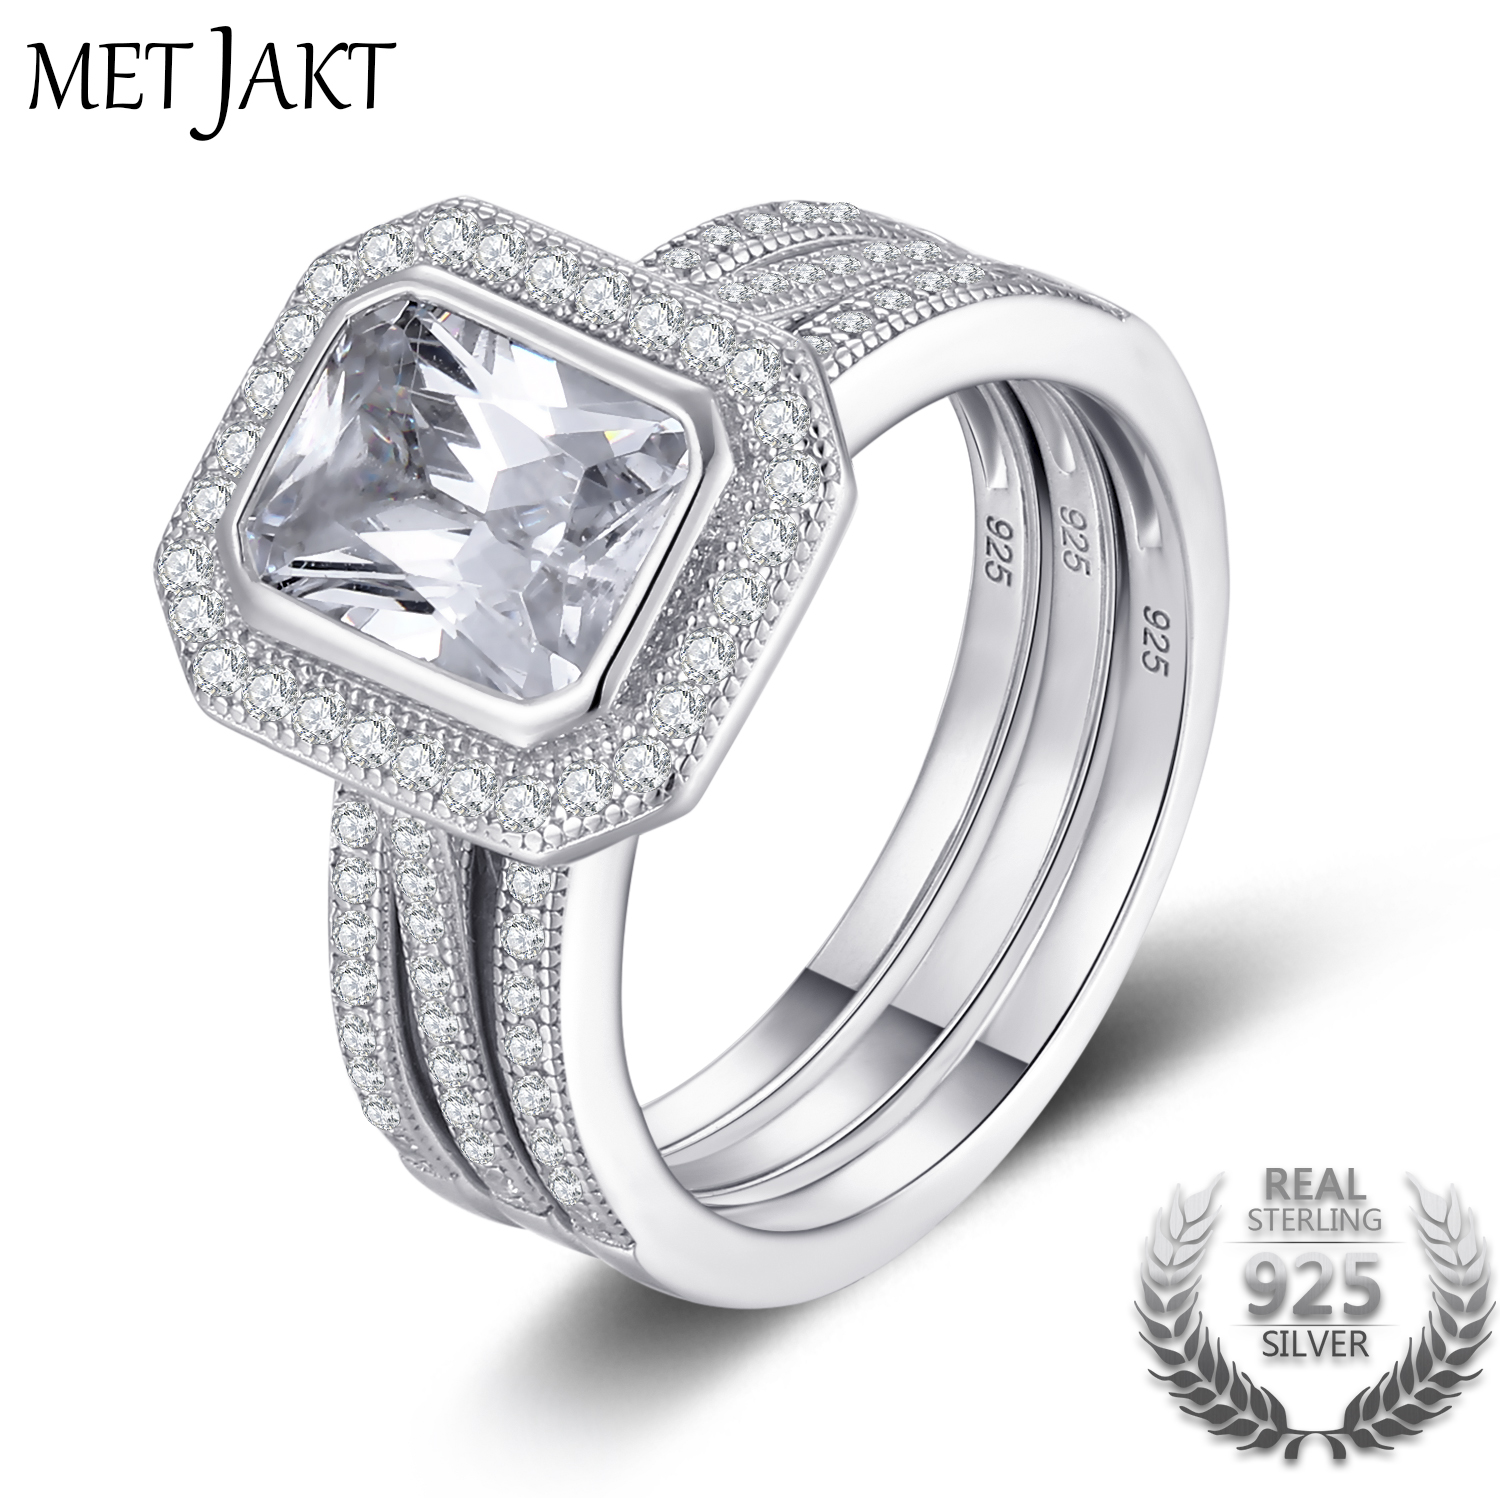 MetJakt Wedding Design Triple Rings Solid 925 Sterling Silver Cubic Zirconia Ring for Women's Wedding Birthday Party alcatel one touch pixi 3 8 0 9022x 8gb lte smoky grey 9022x 2aalru1